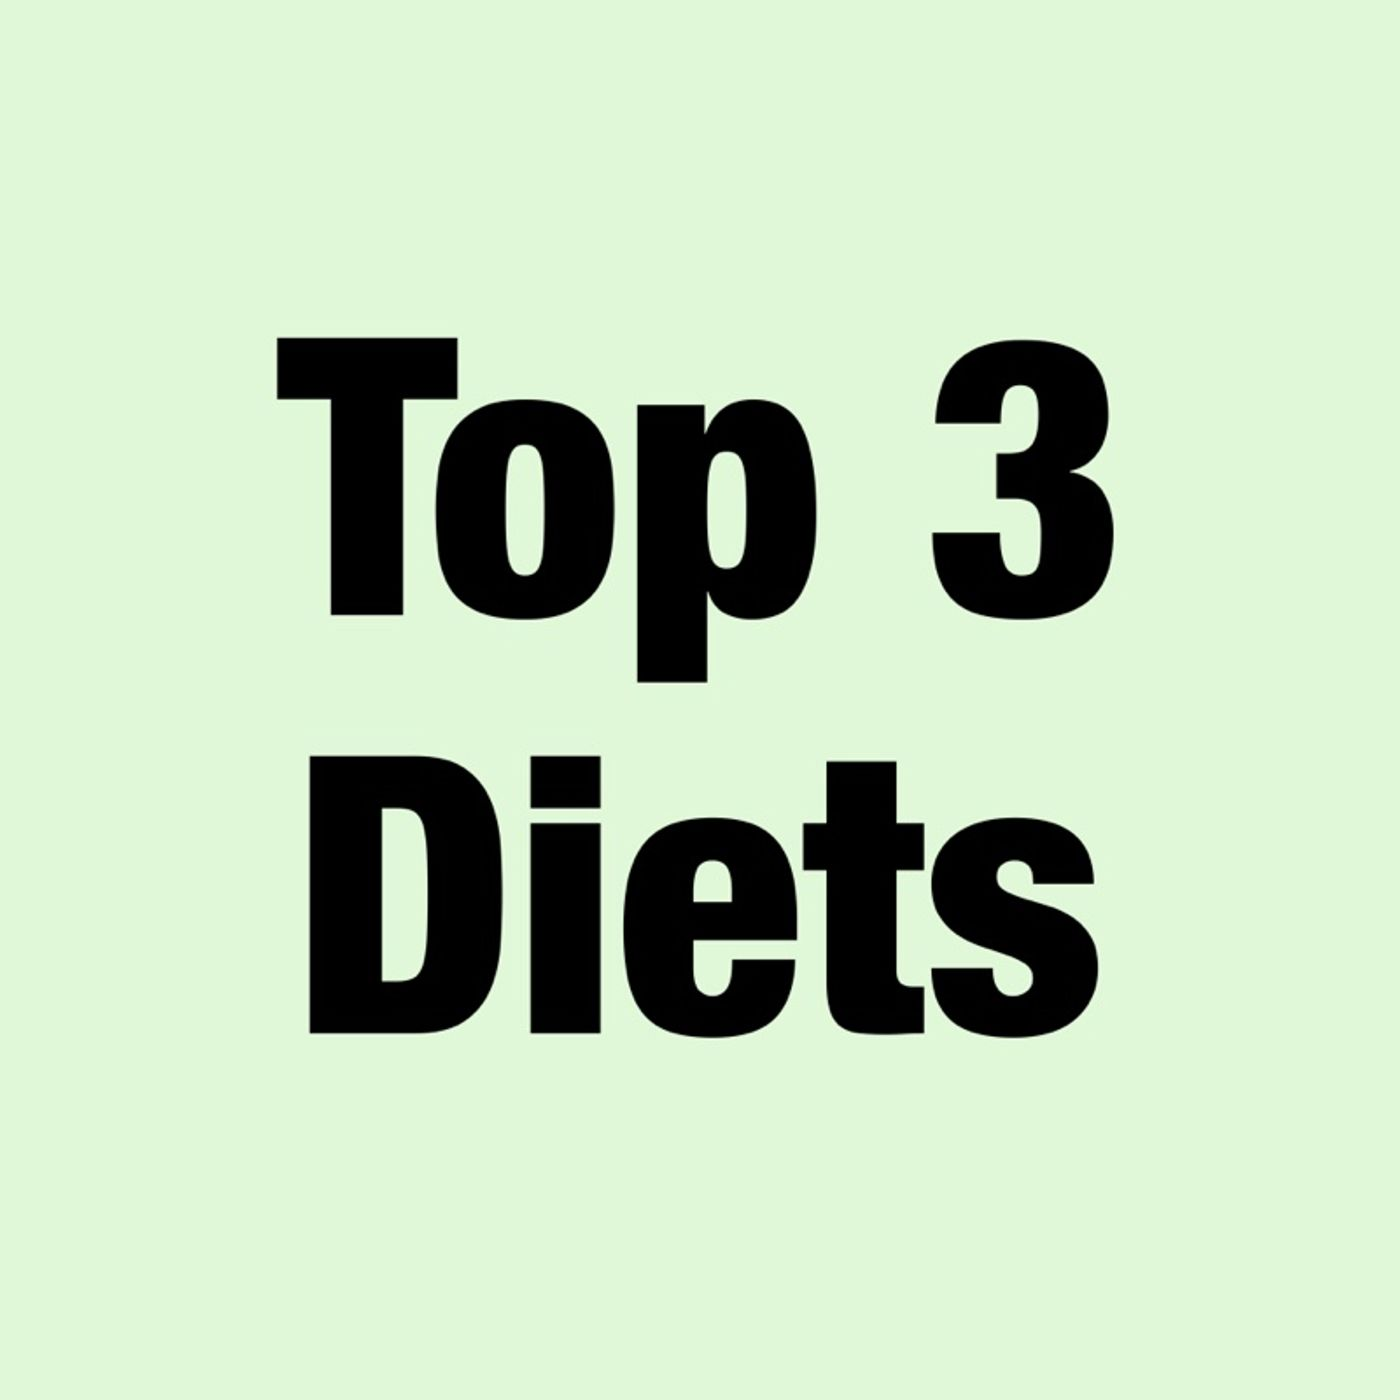 181 - Top 3 Diets Compared